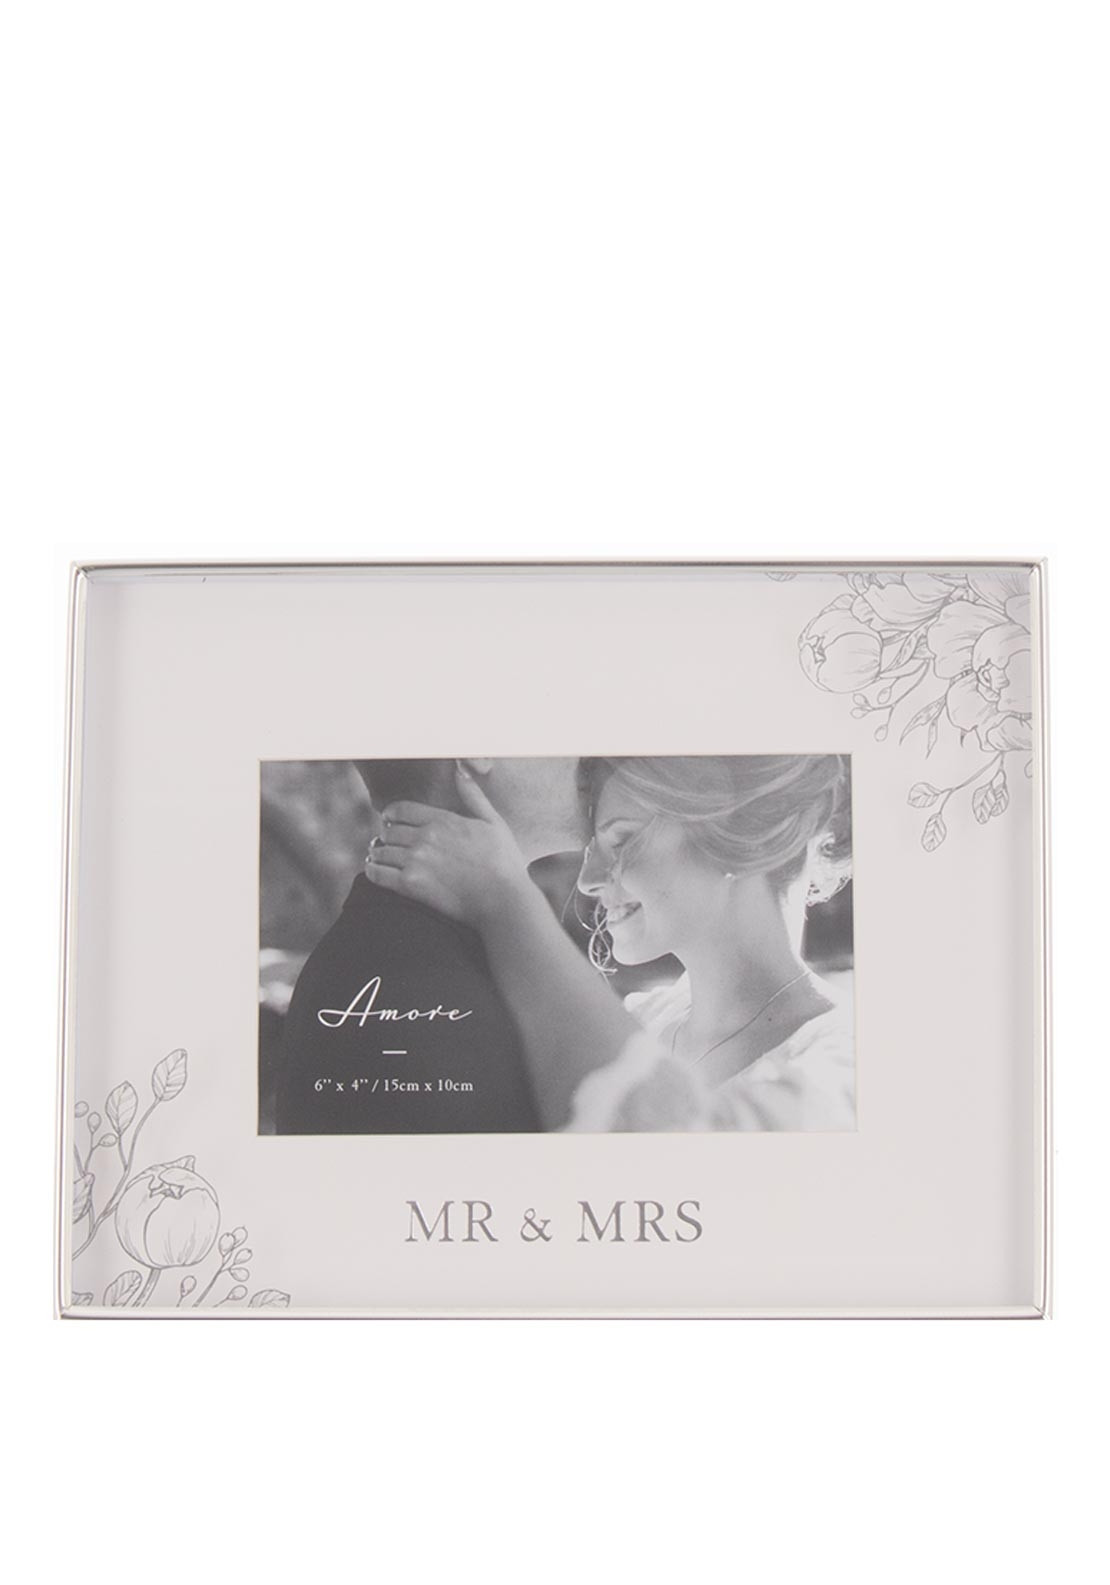 Amore Mr and Mrs Photo Frame